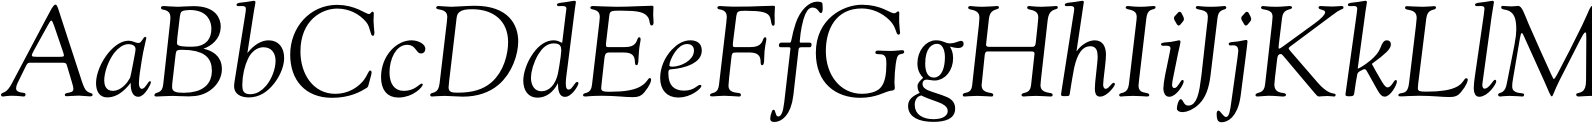 Goudy Old Style DT Italic Font